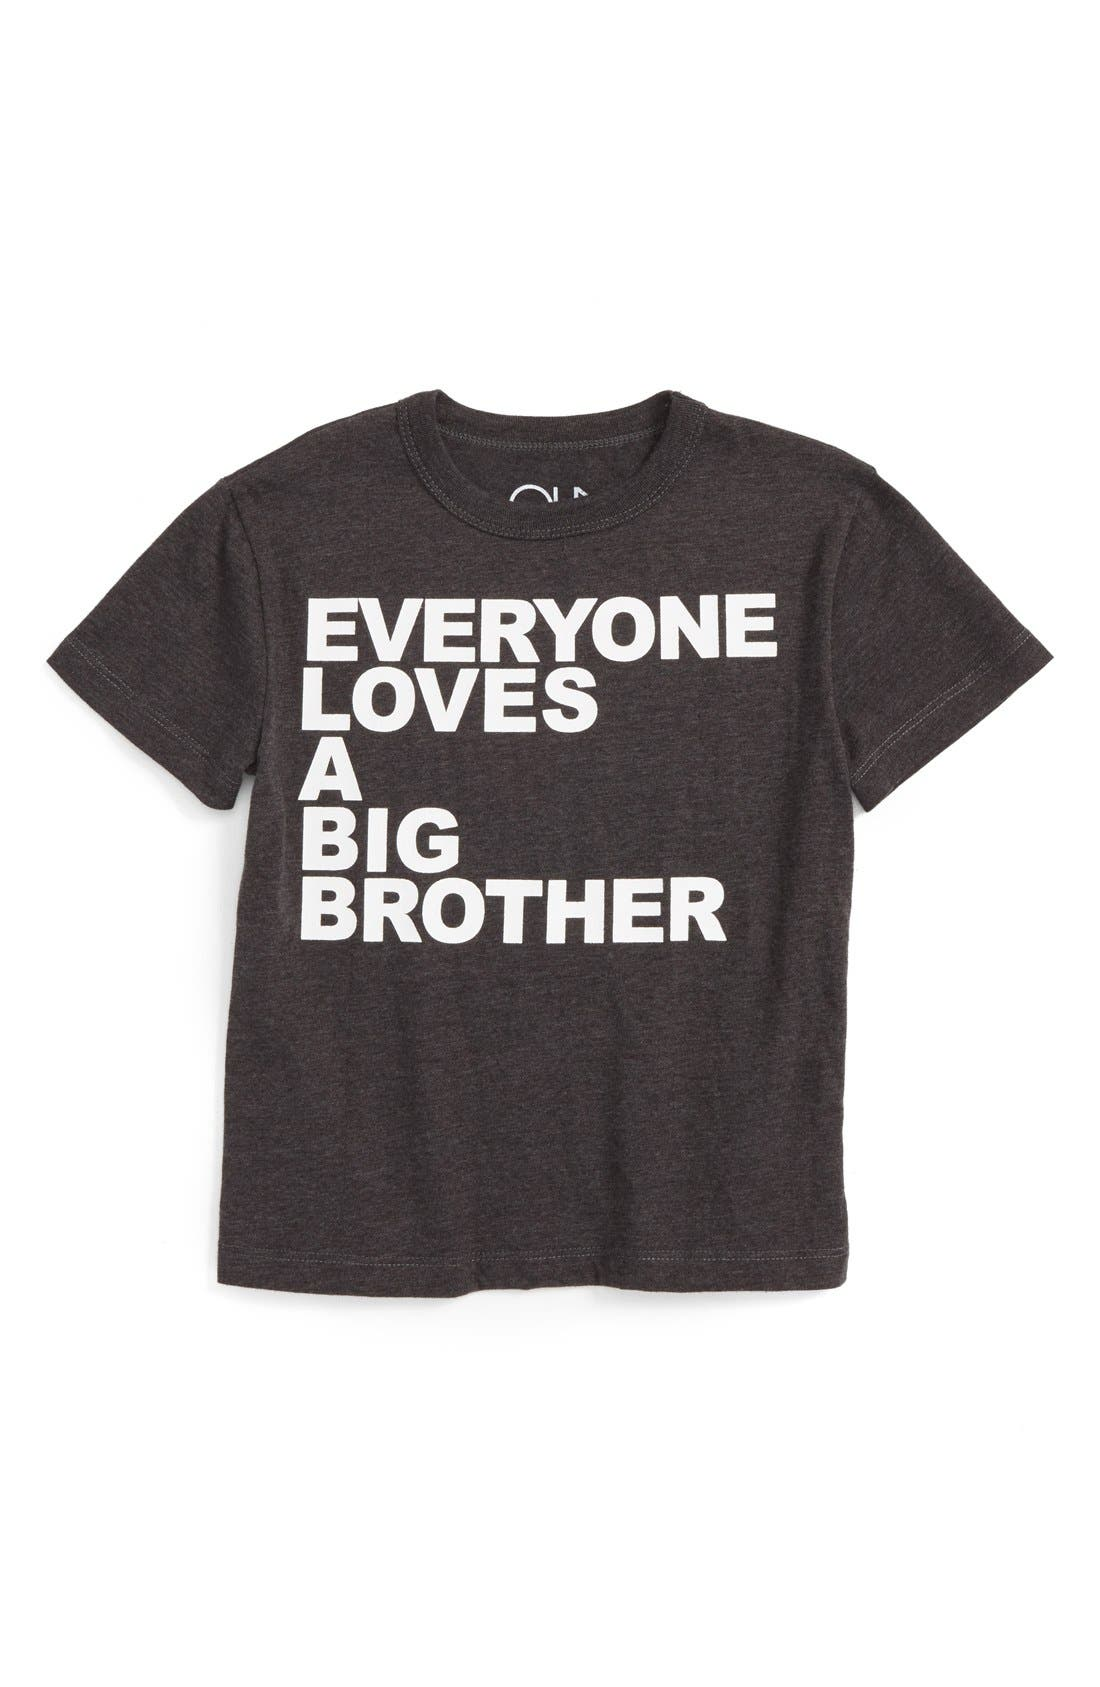 Shop for the perfect big brother for boys gift from our wide selection of designs, or create your own personalized gifts.